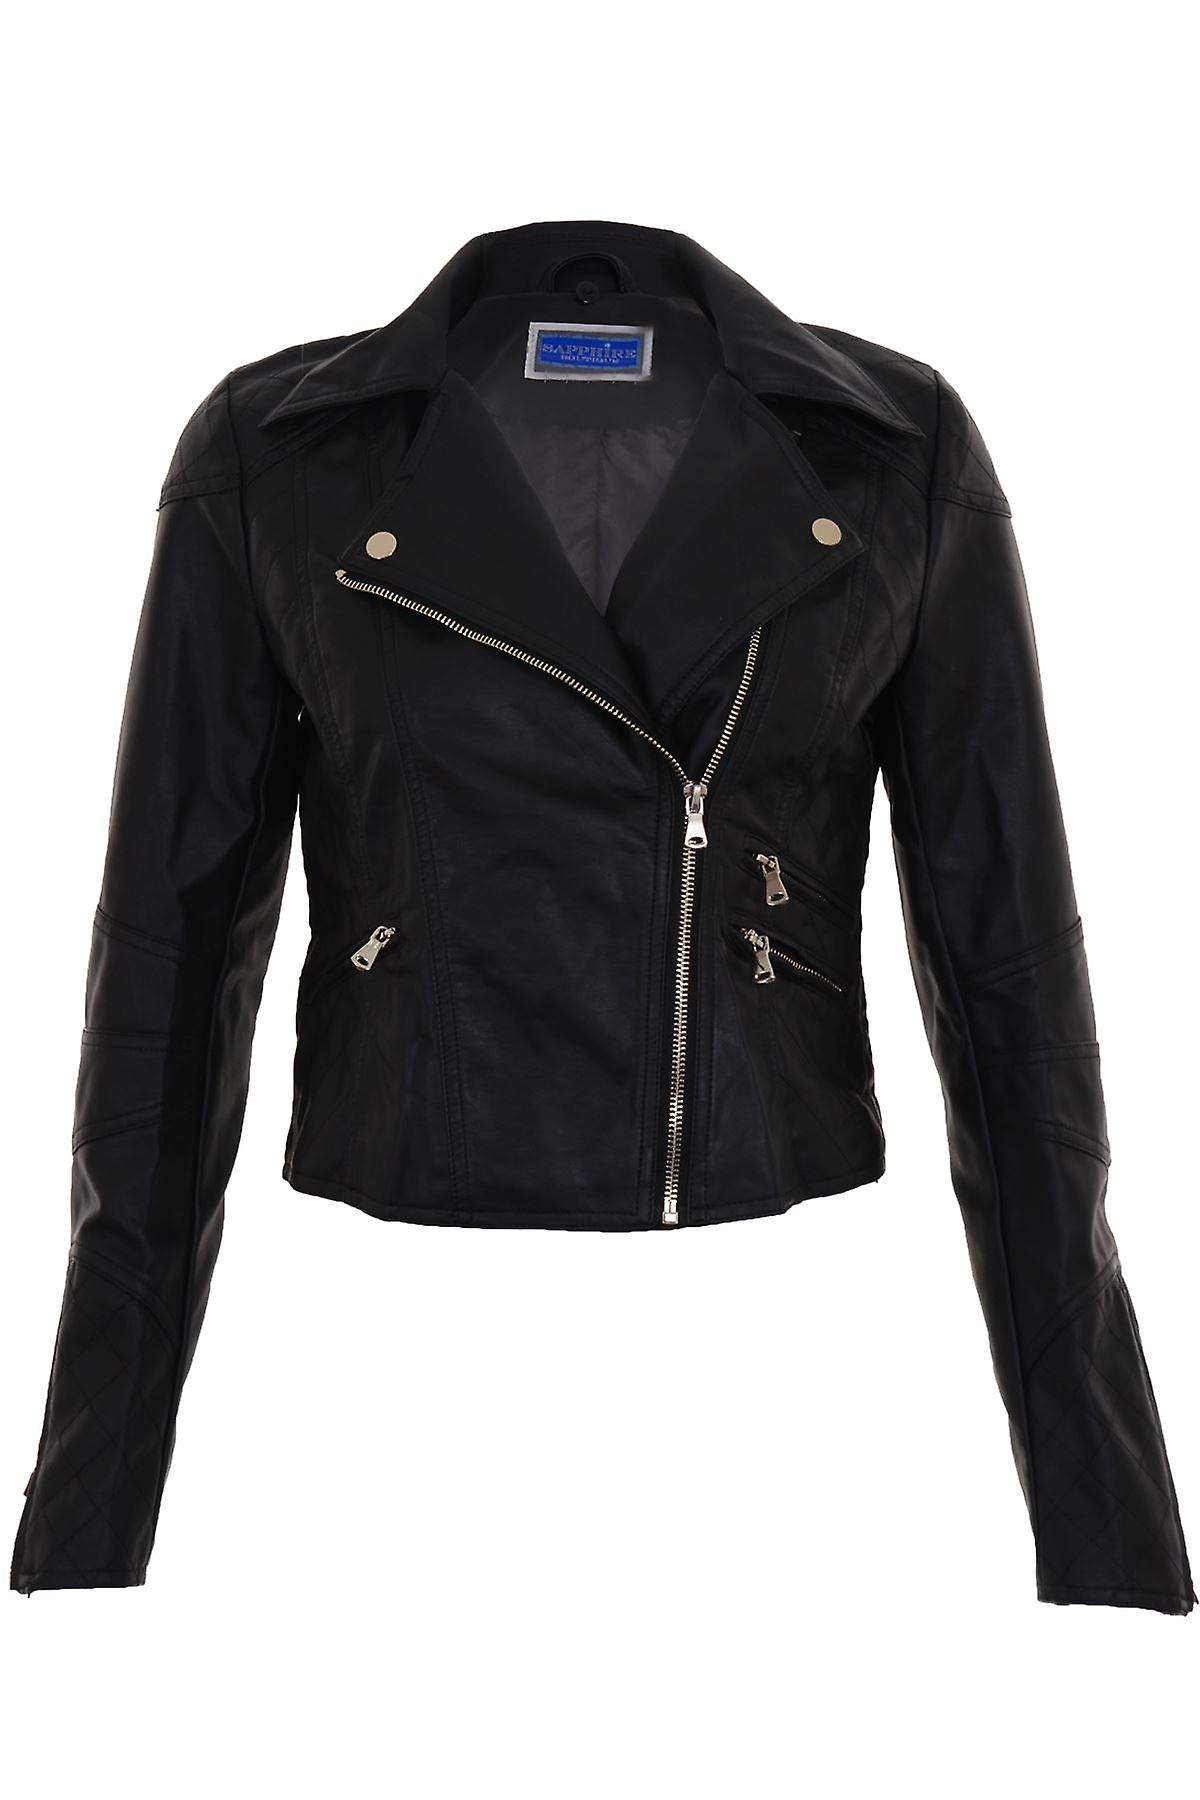 Ladies Detachable Faux Fur Collar Women's Crop Synthetic Leather Biker Jacket